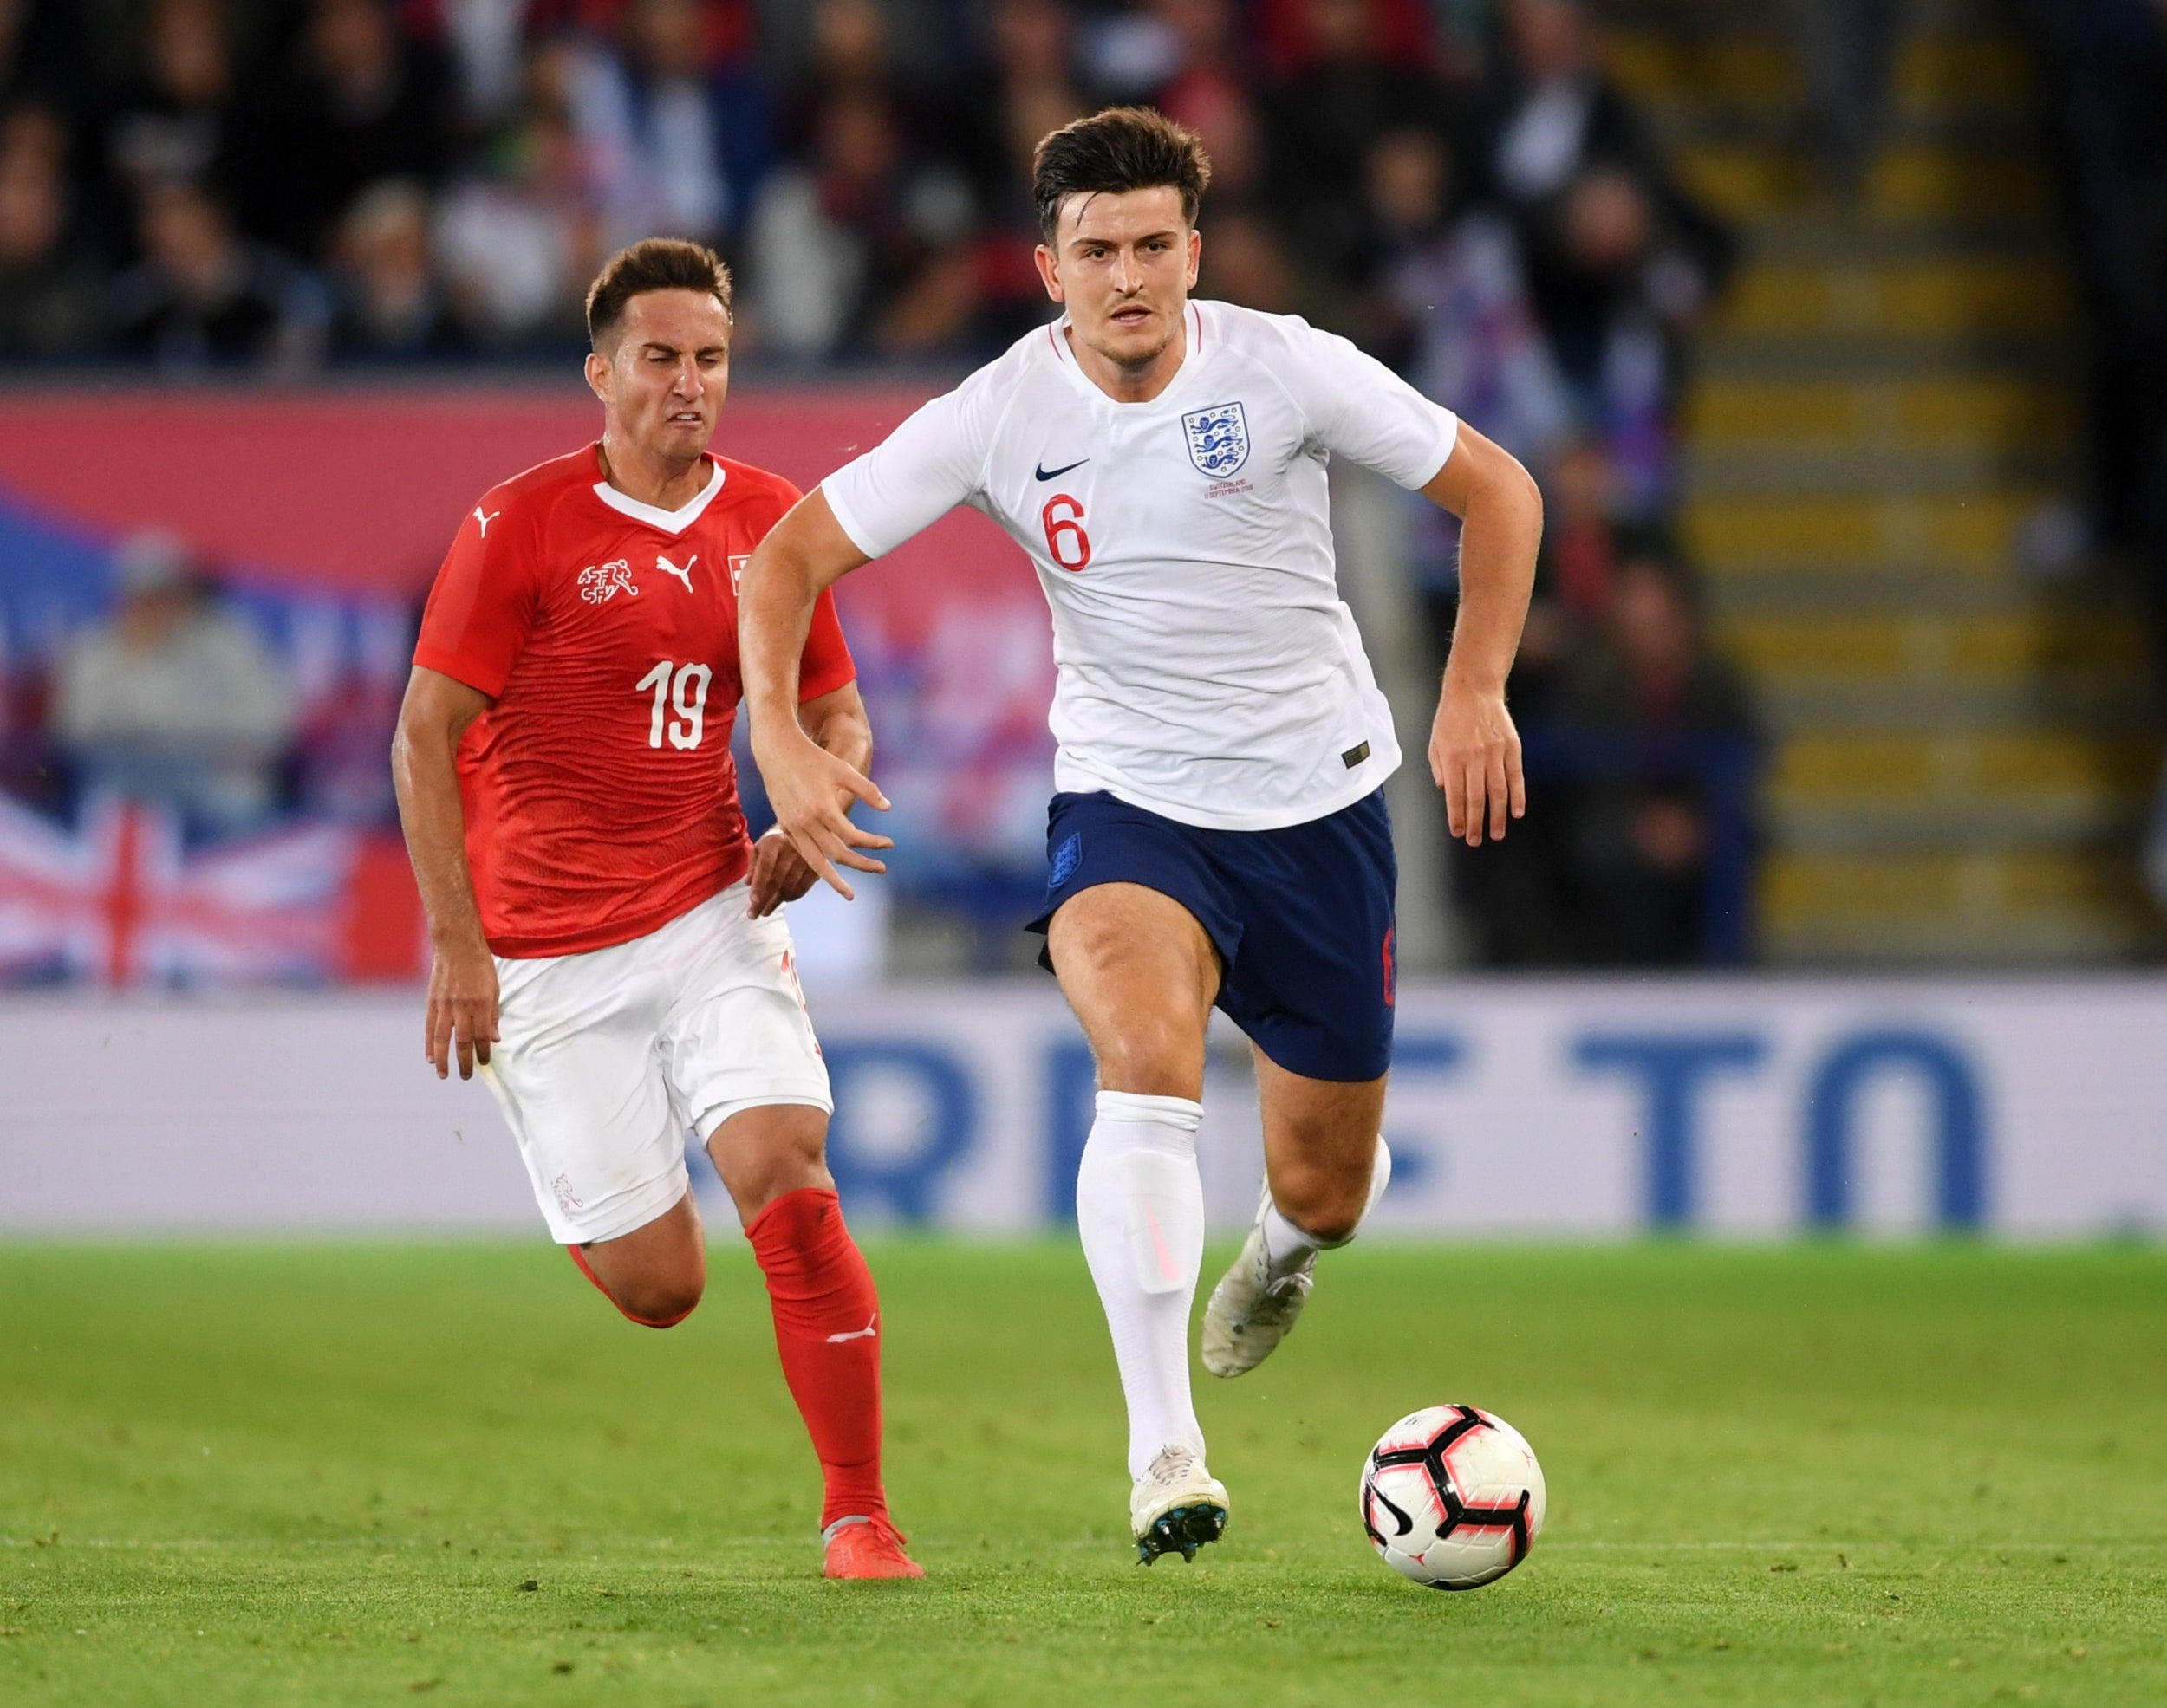 Harry Maguire - 6